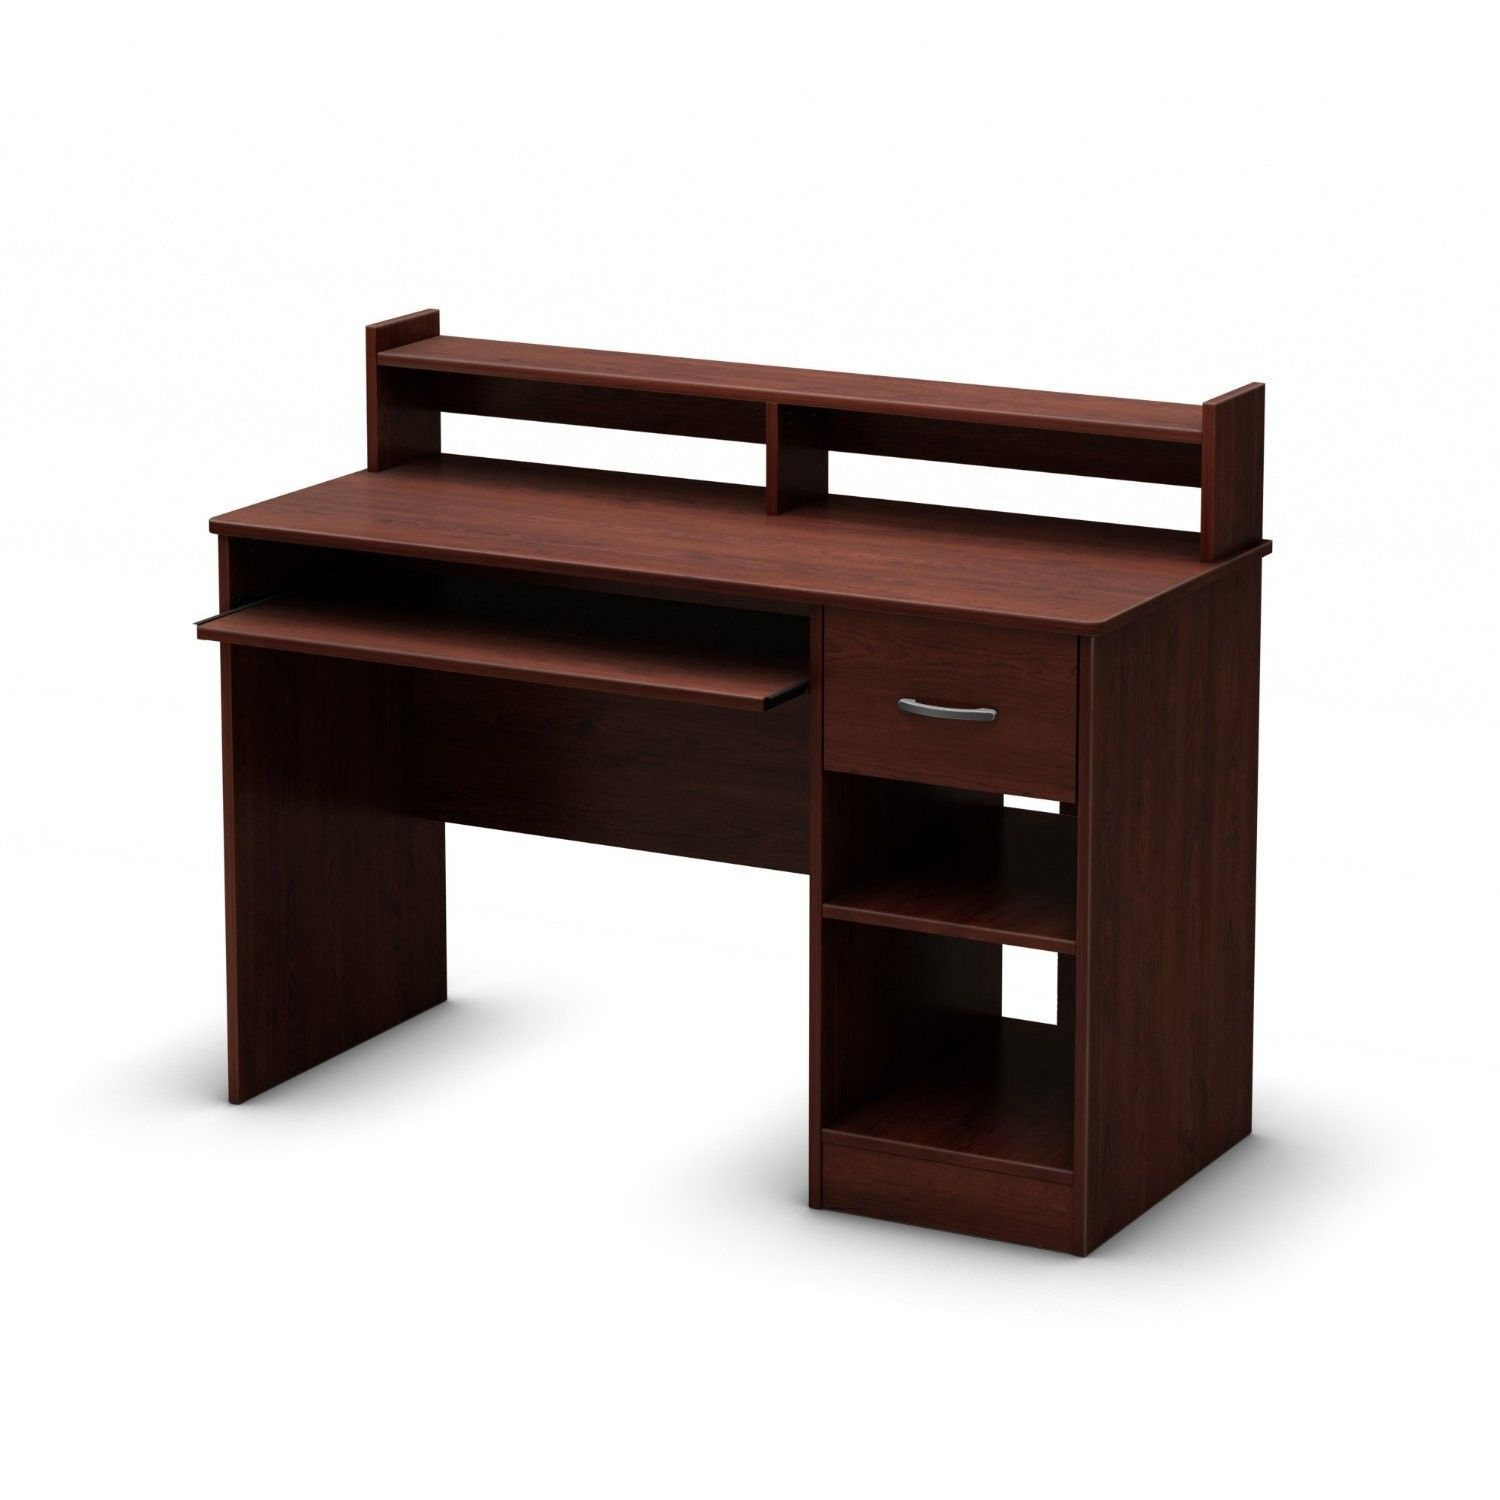 Small Desk with Keyboard Drawer 1500 x 1500